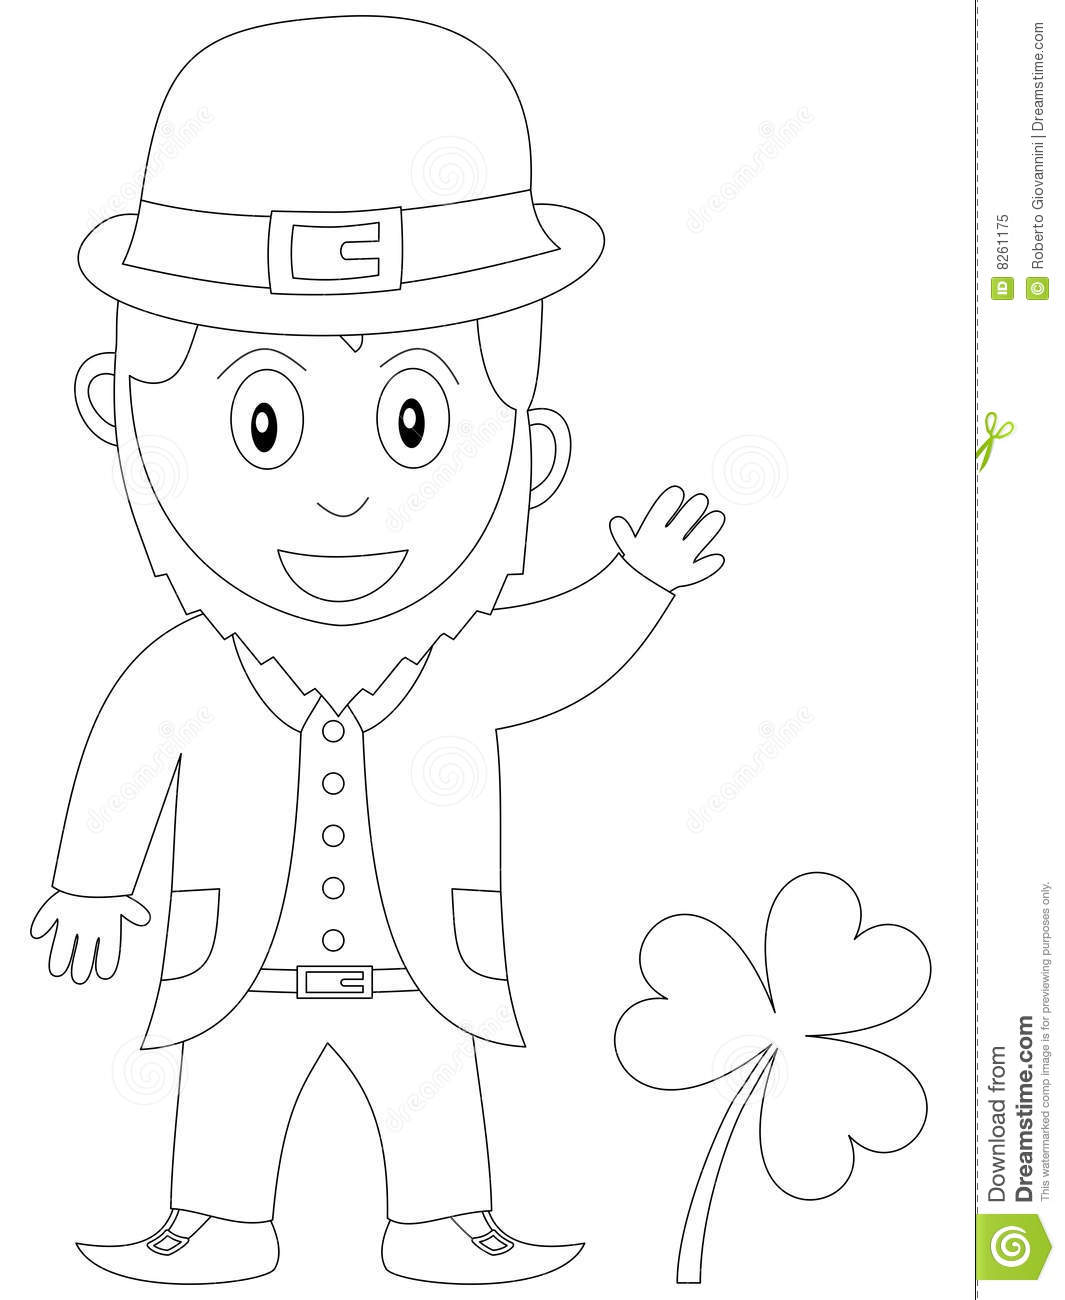 coloring book for kids 24 royalty free stock photo - Children Drawing Book Free Download